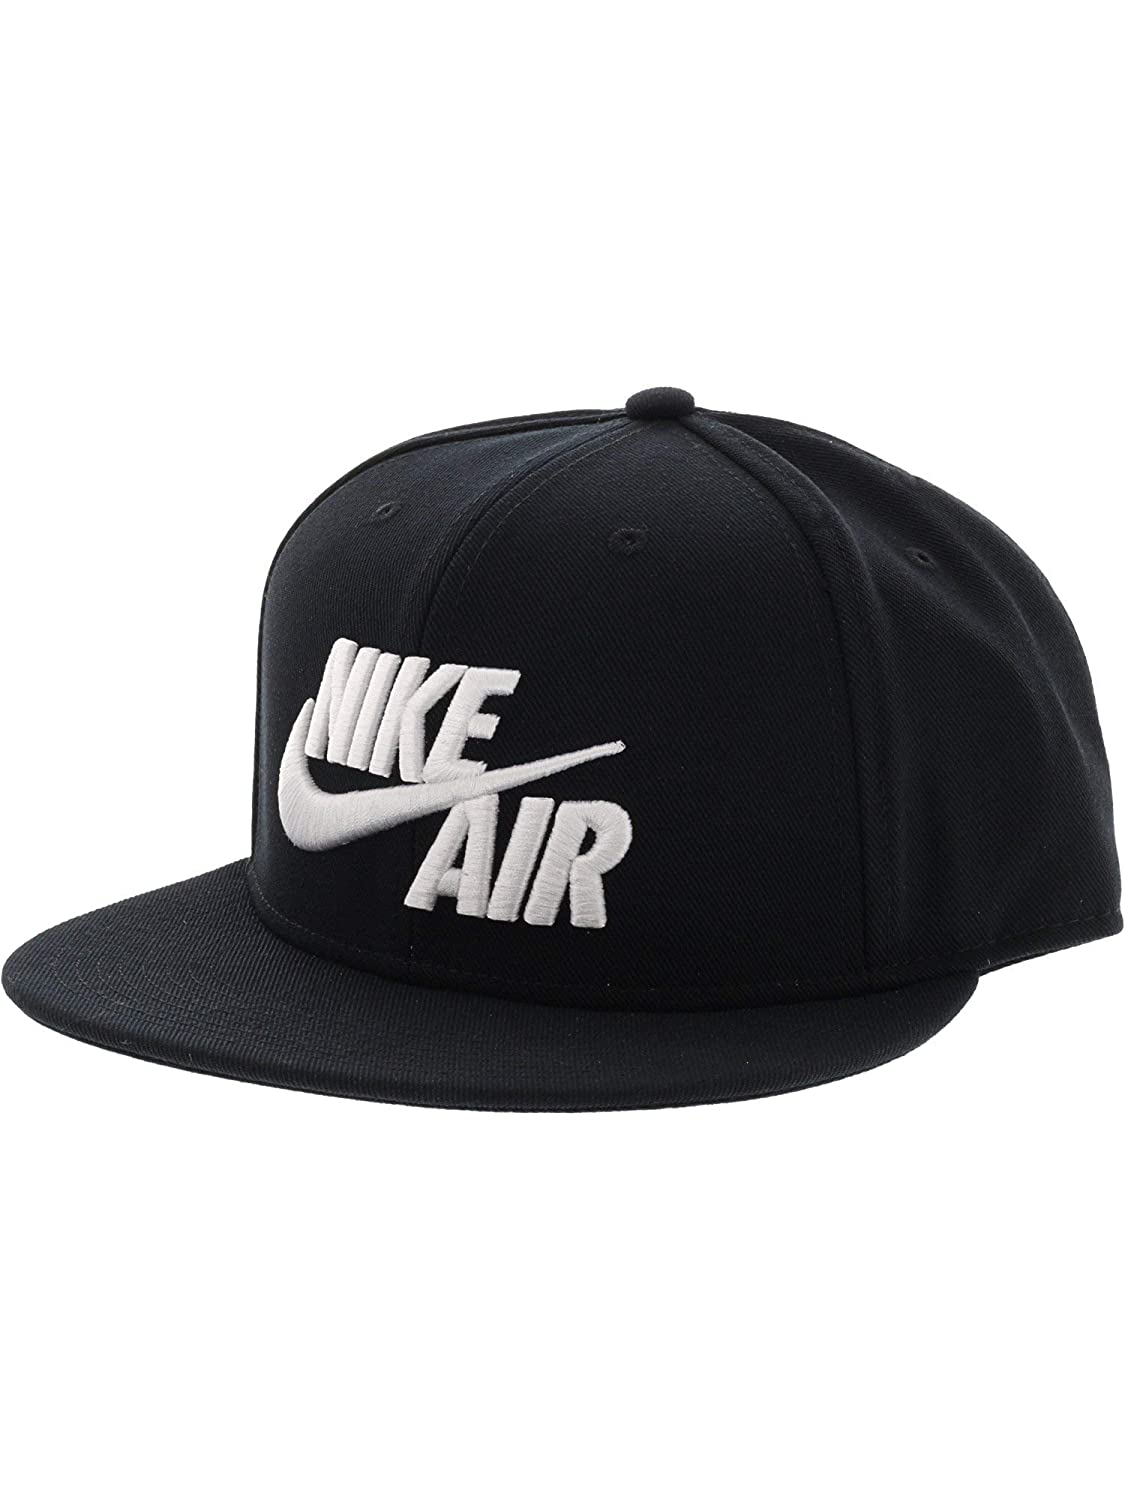 dc302fc80ee Amazon.com  NIKE Mens Air True Snapback Hat Black Metallic Gold  Sports    Outdoors